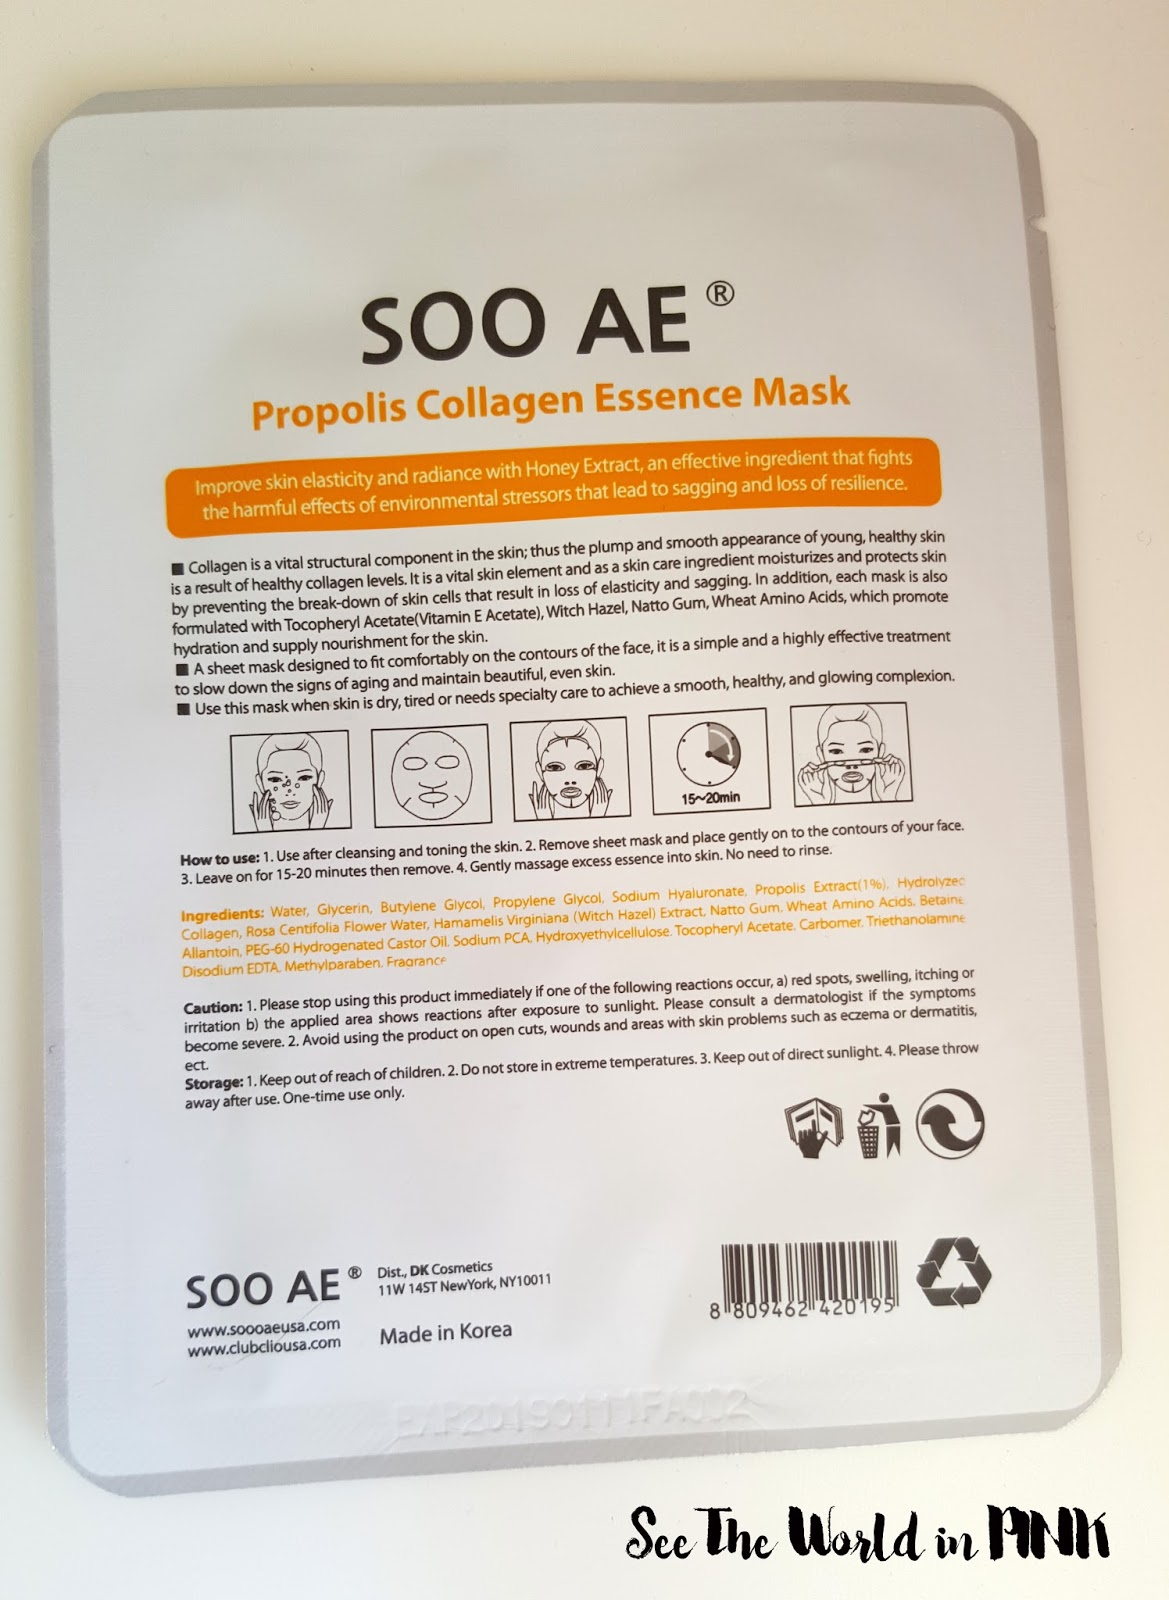 soo ae propolis collagen essence mask